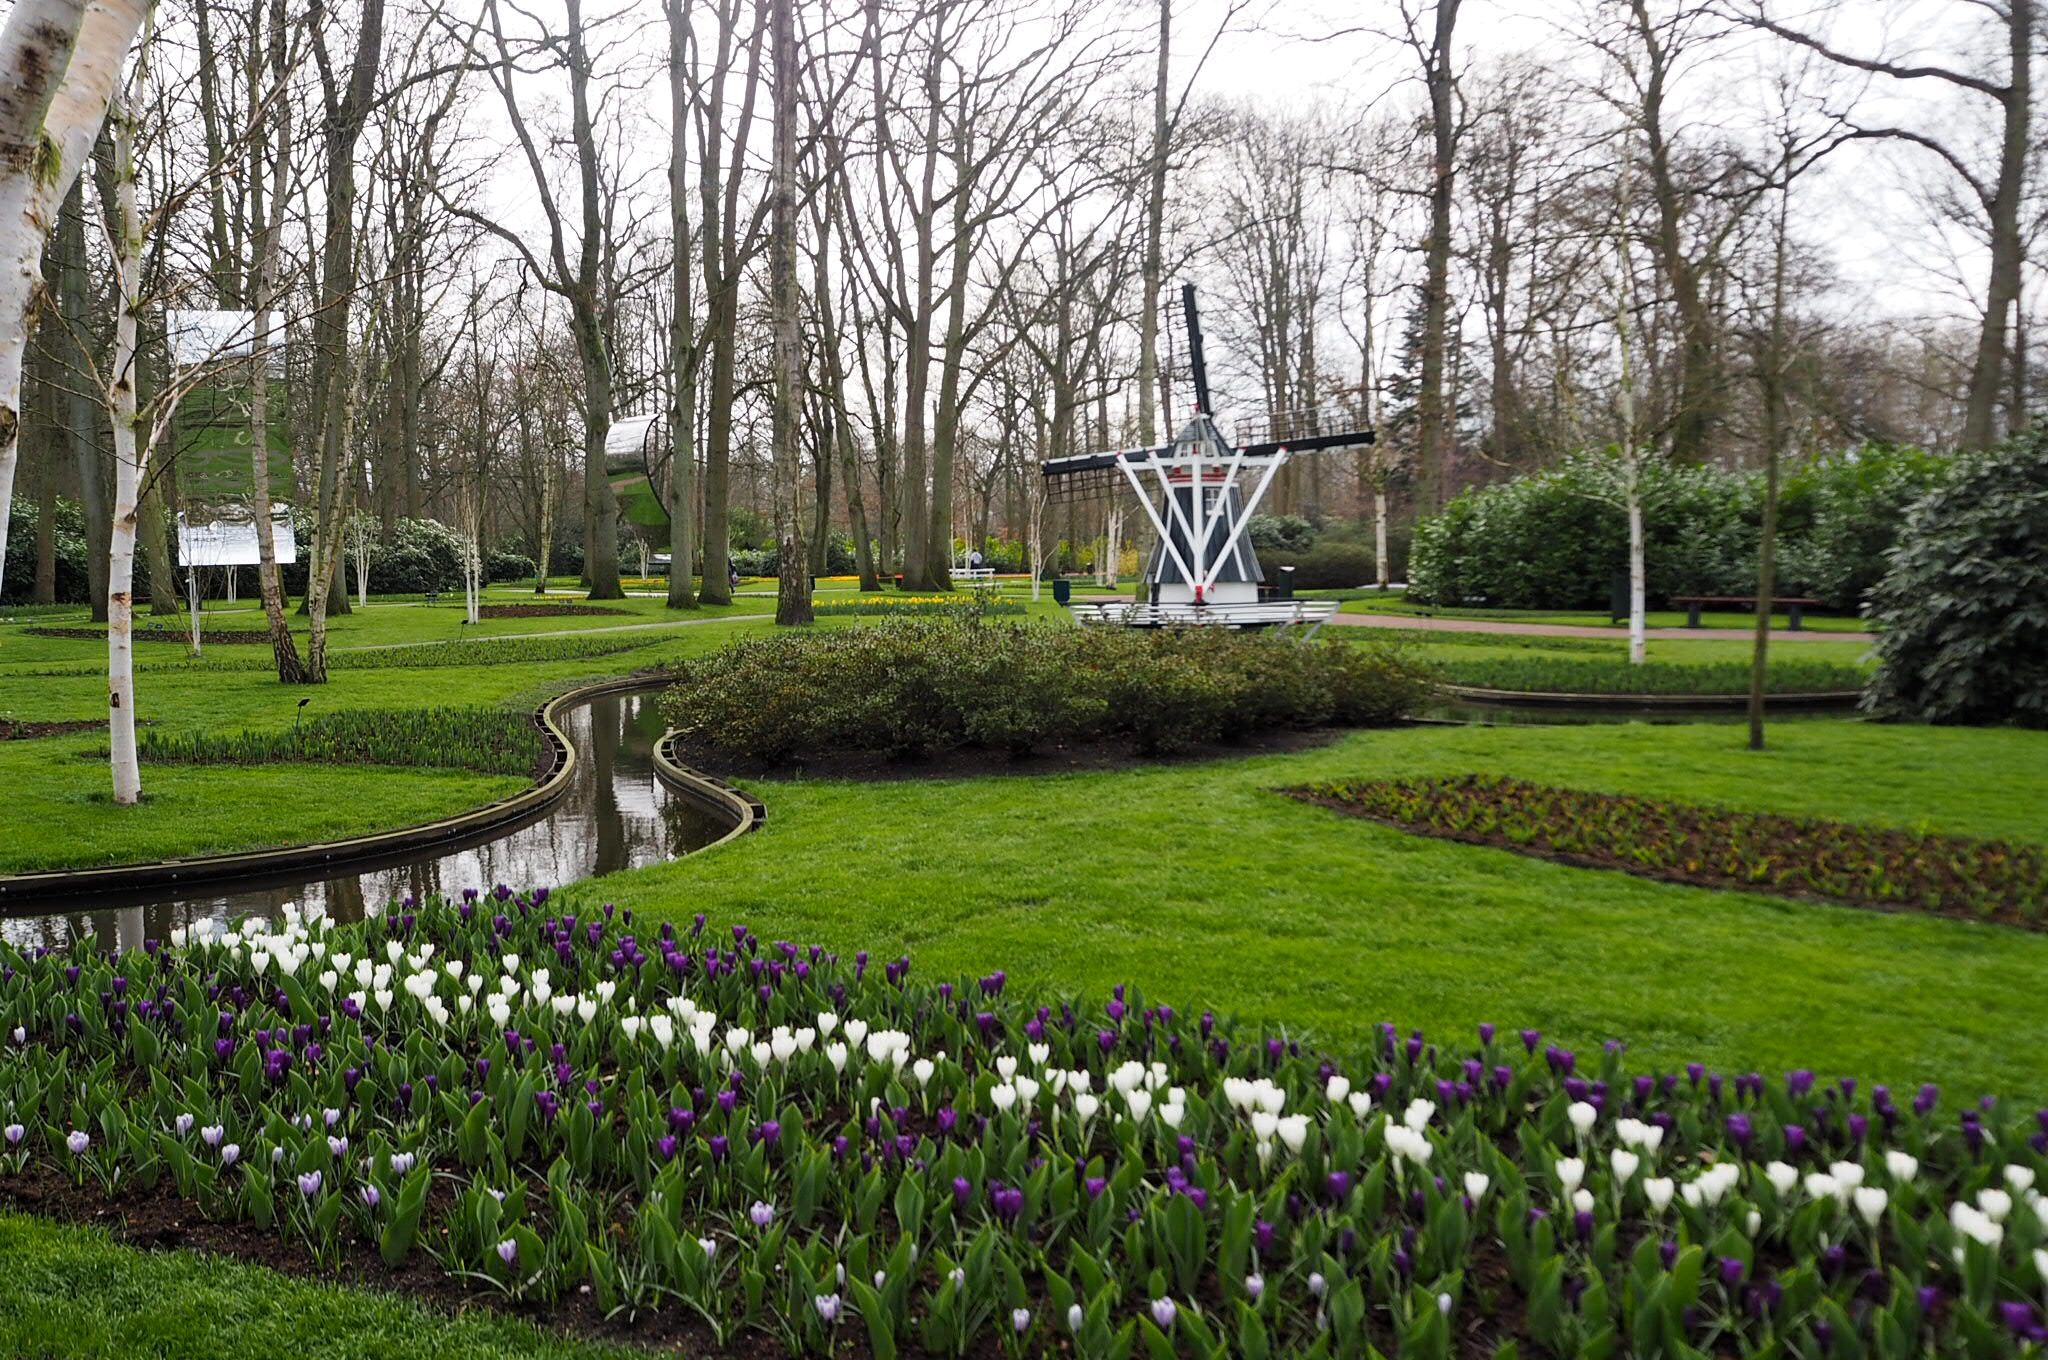 Garden views over Keukenhof Tulip Gardens